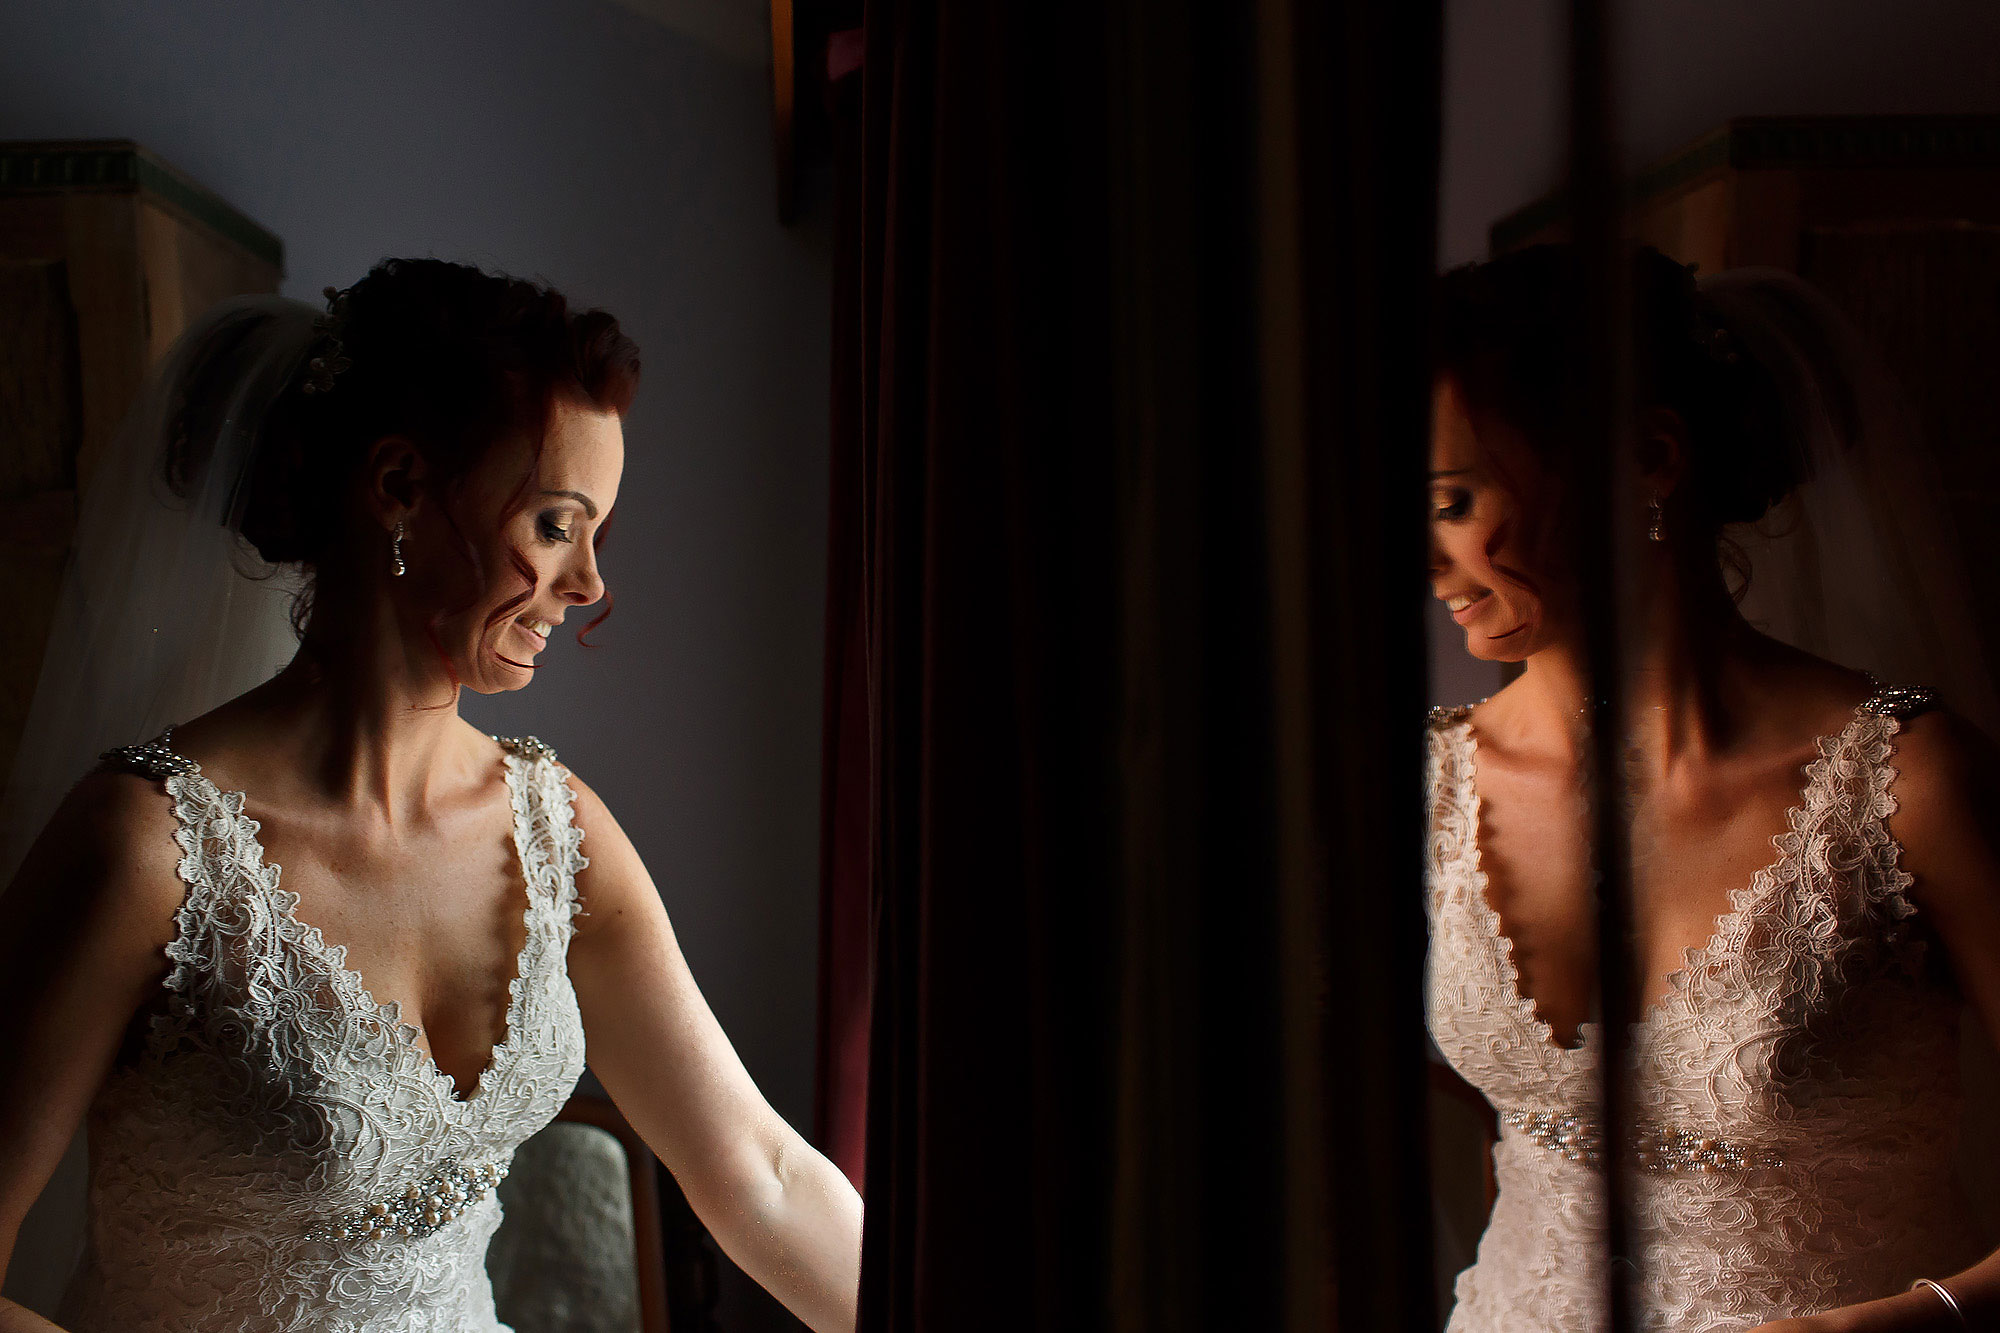 Bride with red hair wearing lace wedding dress | Summer wedding at Wellbeing Farm - Toni Darcy Photography